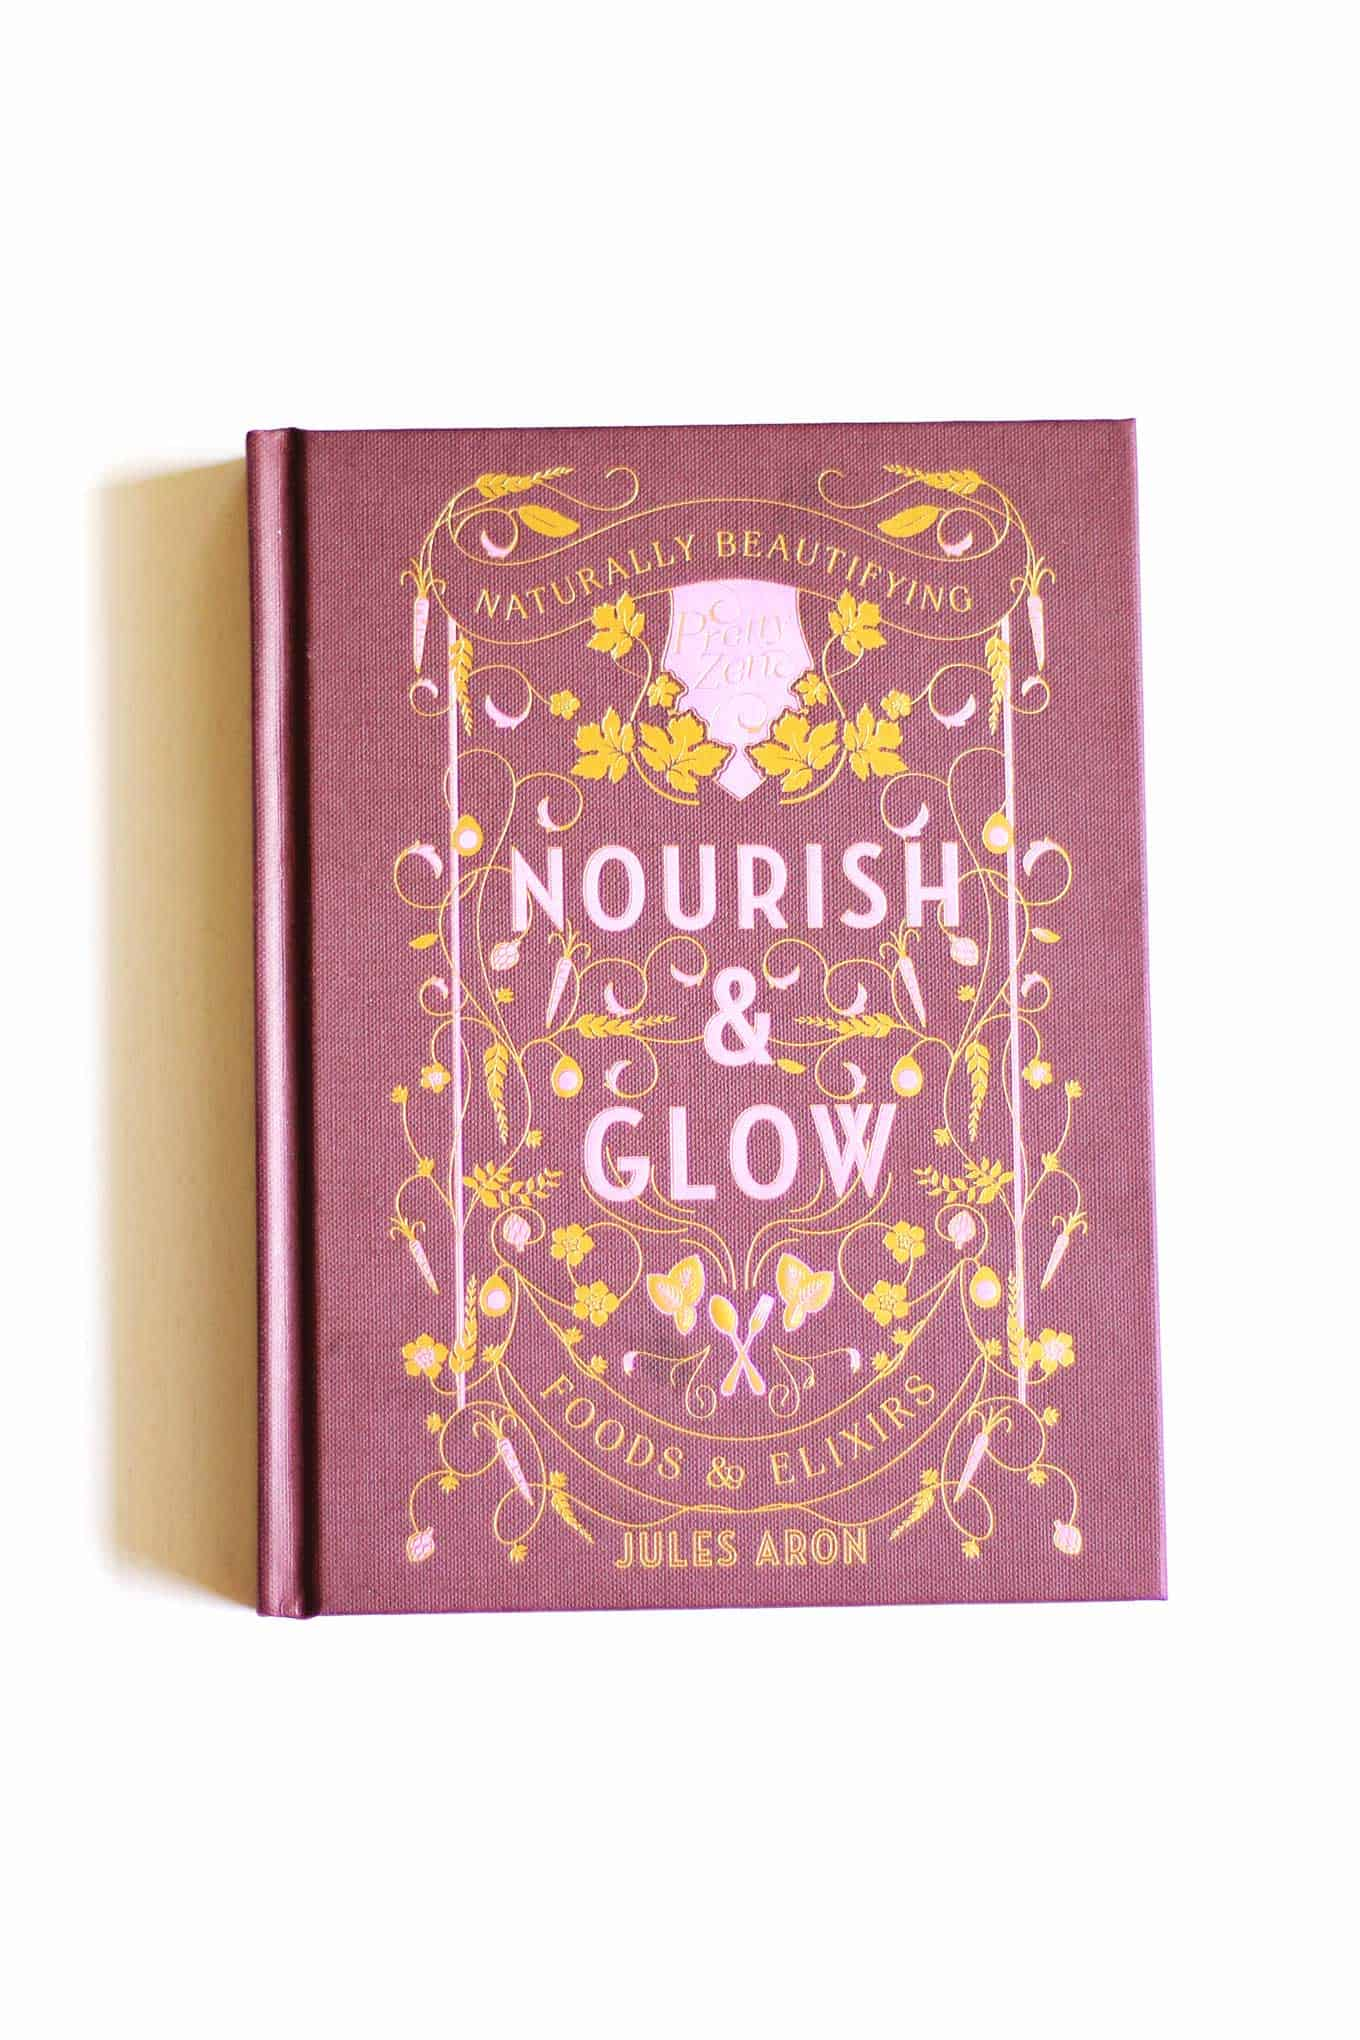 The Nourish & Glow cookbook by Jules Aron